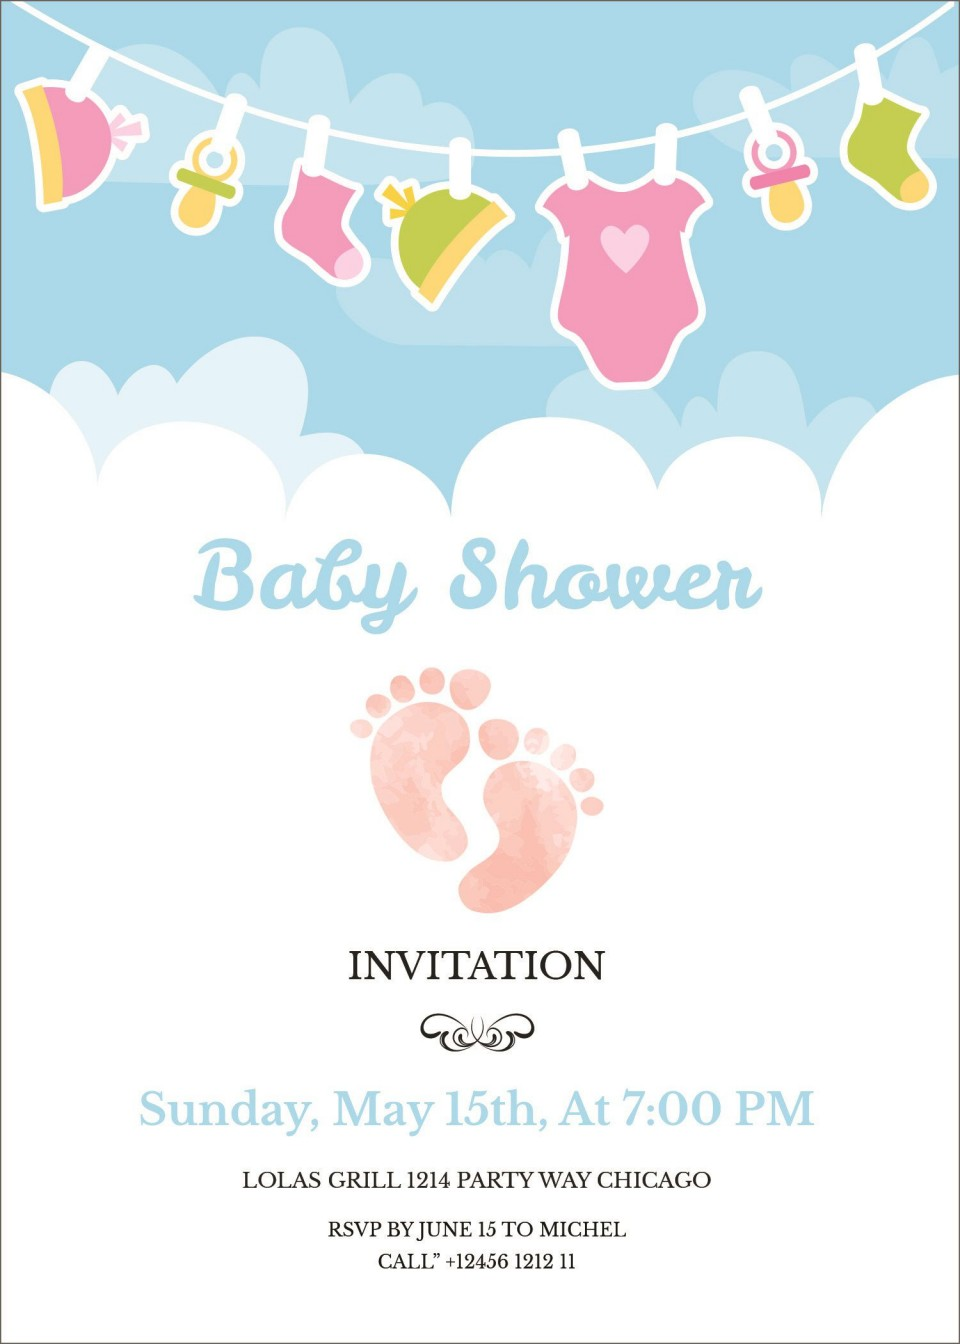 004 Awful Baby Shower Invitation Card Template Free Download Design  Indian960